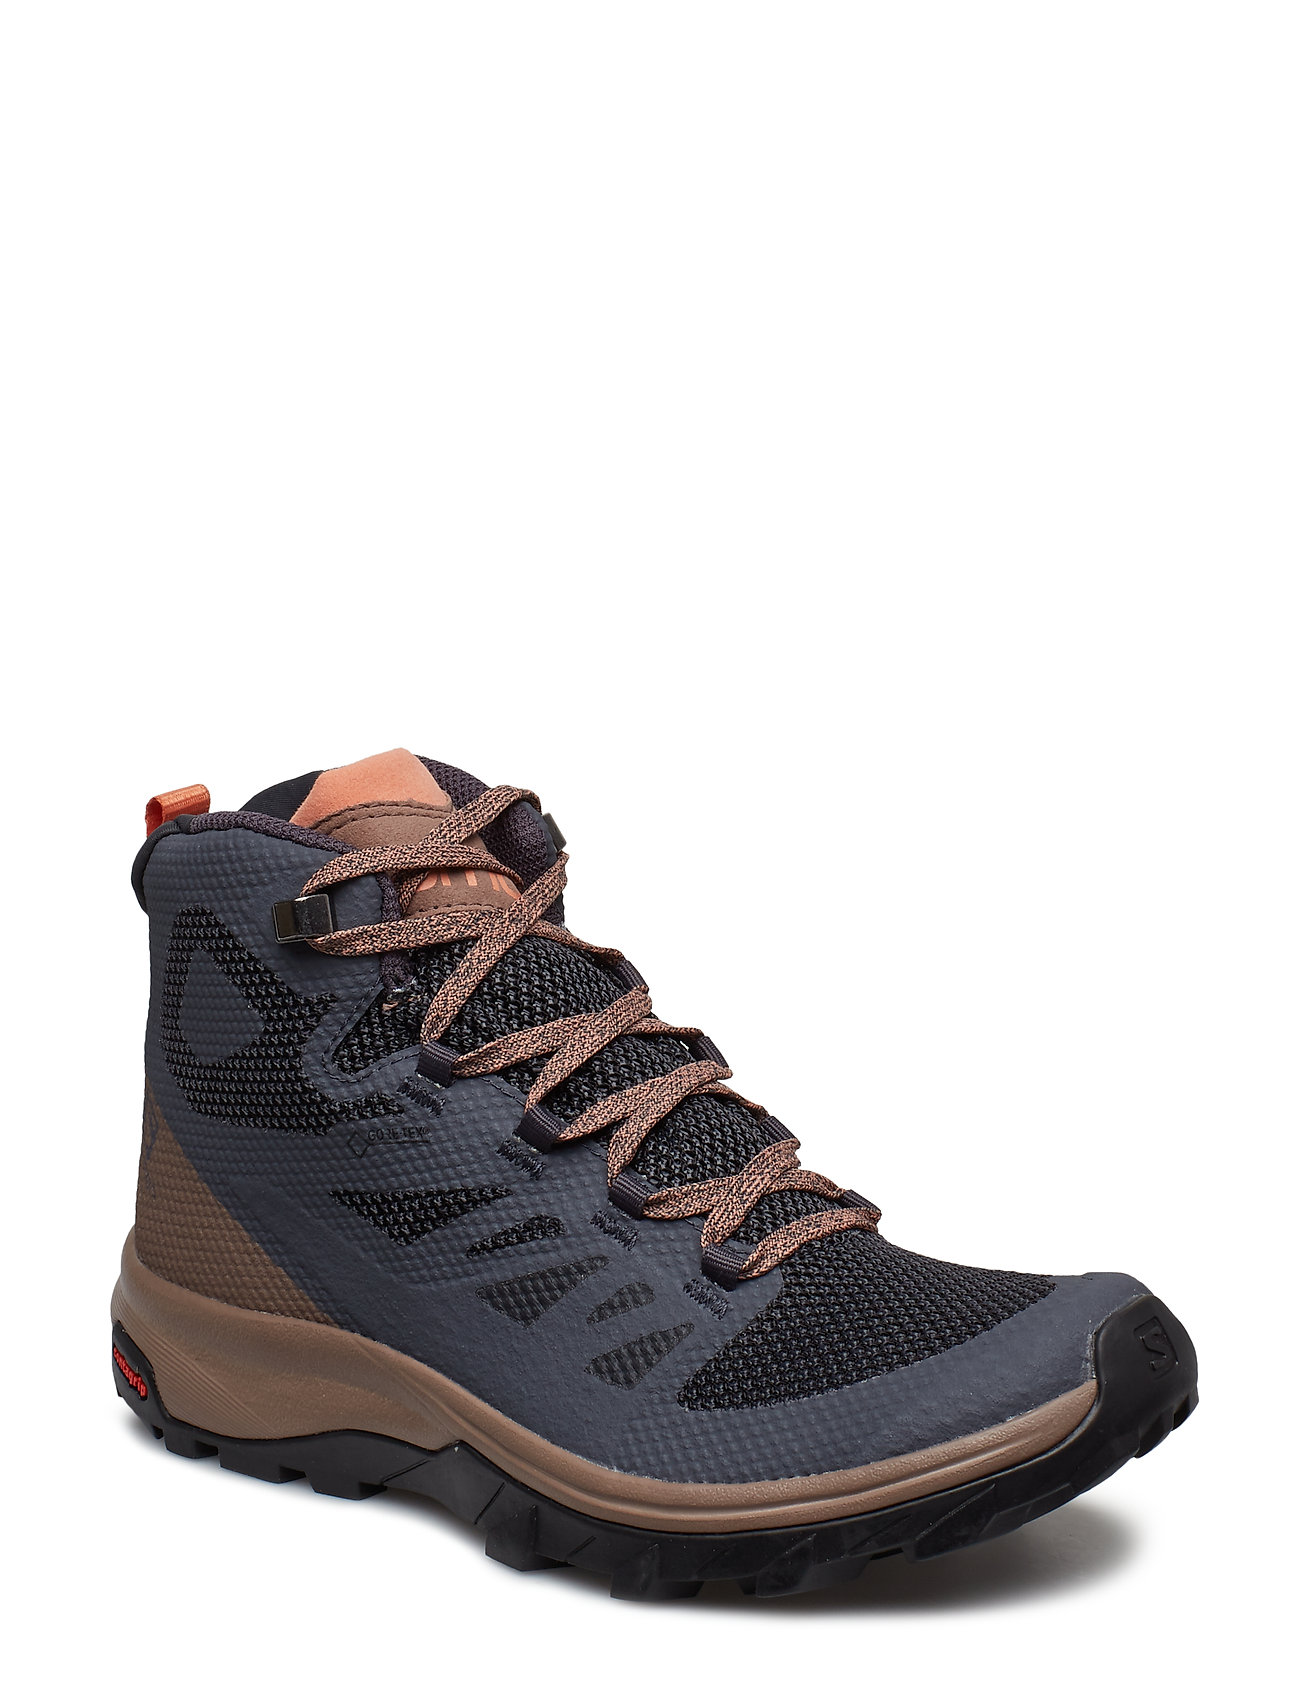 salomon mens outline mid gtx hiking shoes womens